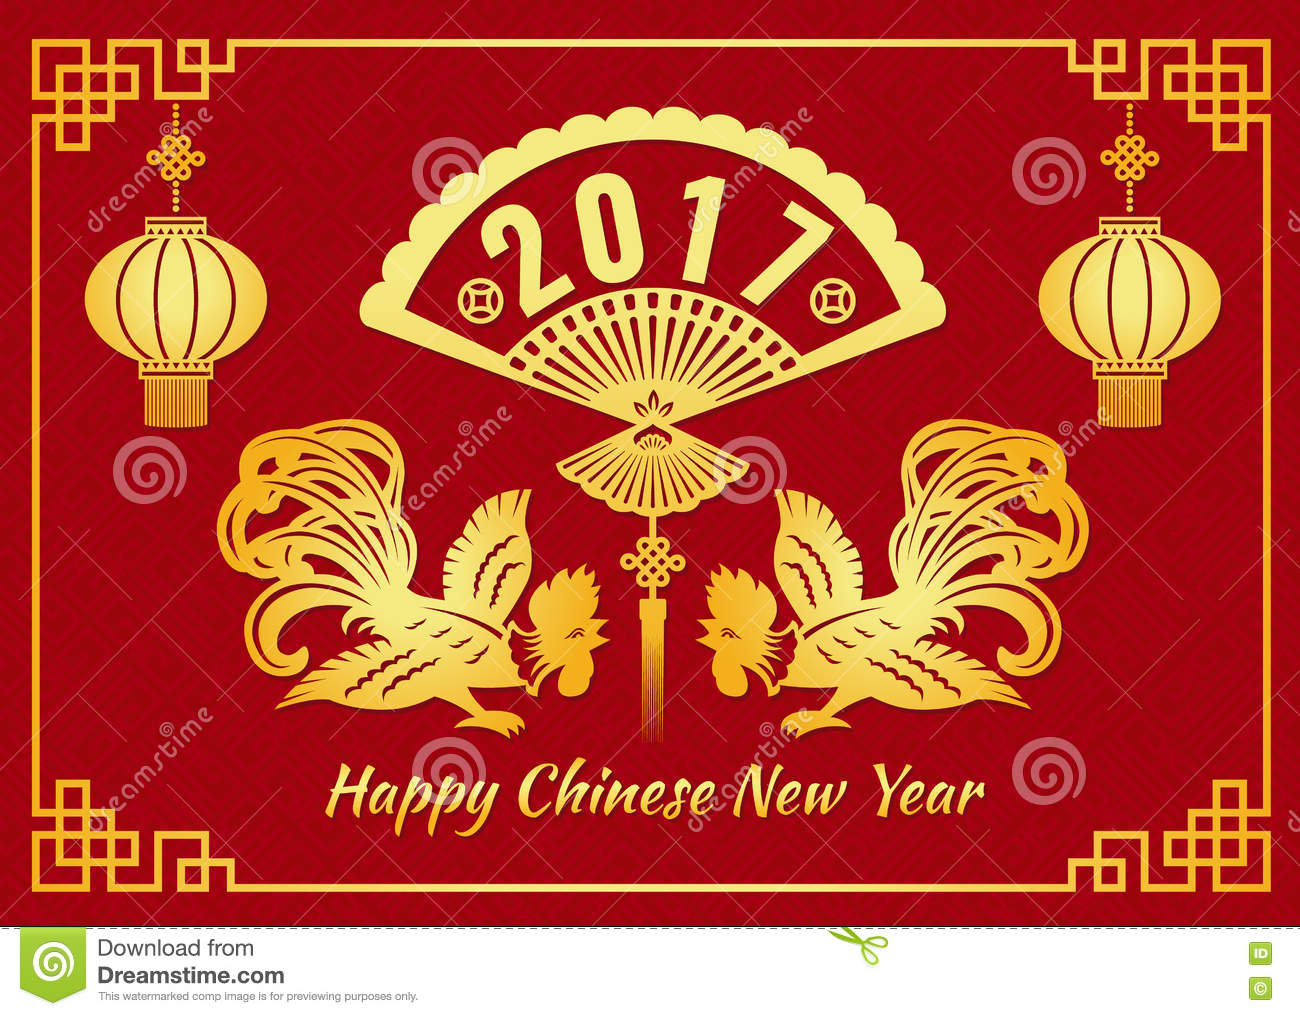 happy chinese new year 2017 card is lanterns rooster chicken and 2017 text in china fans